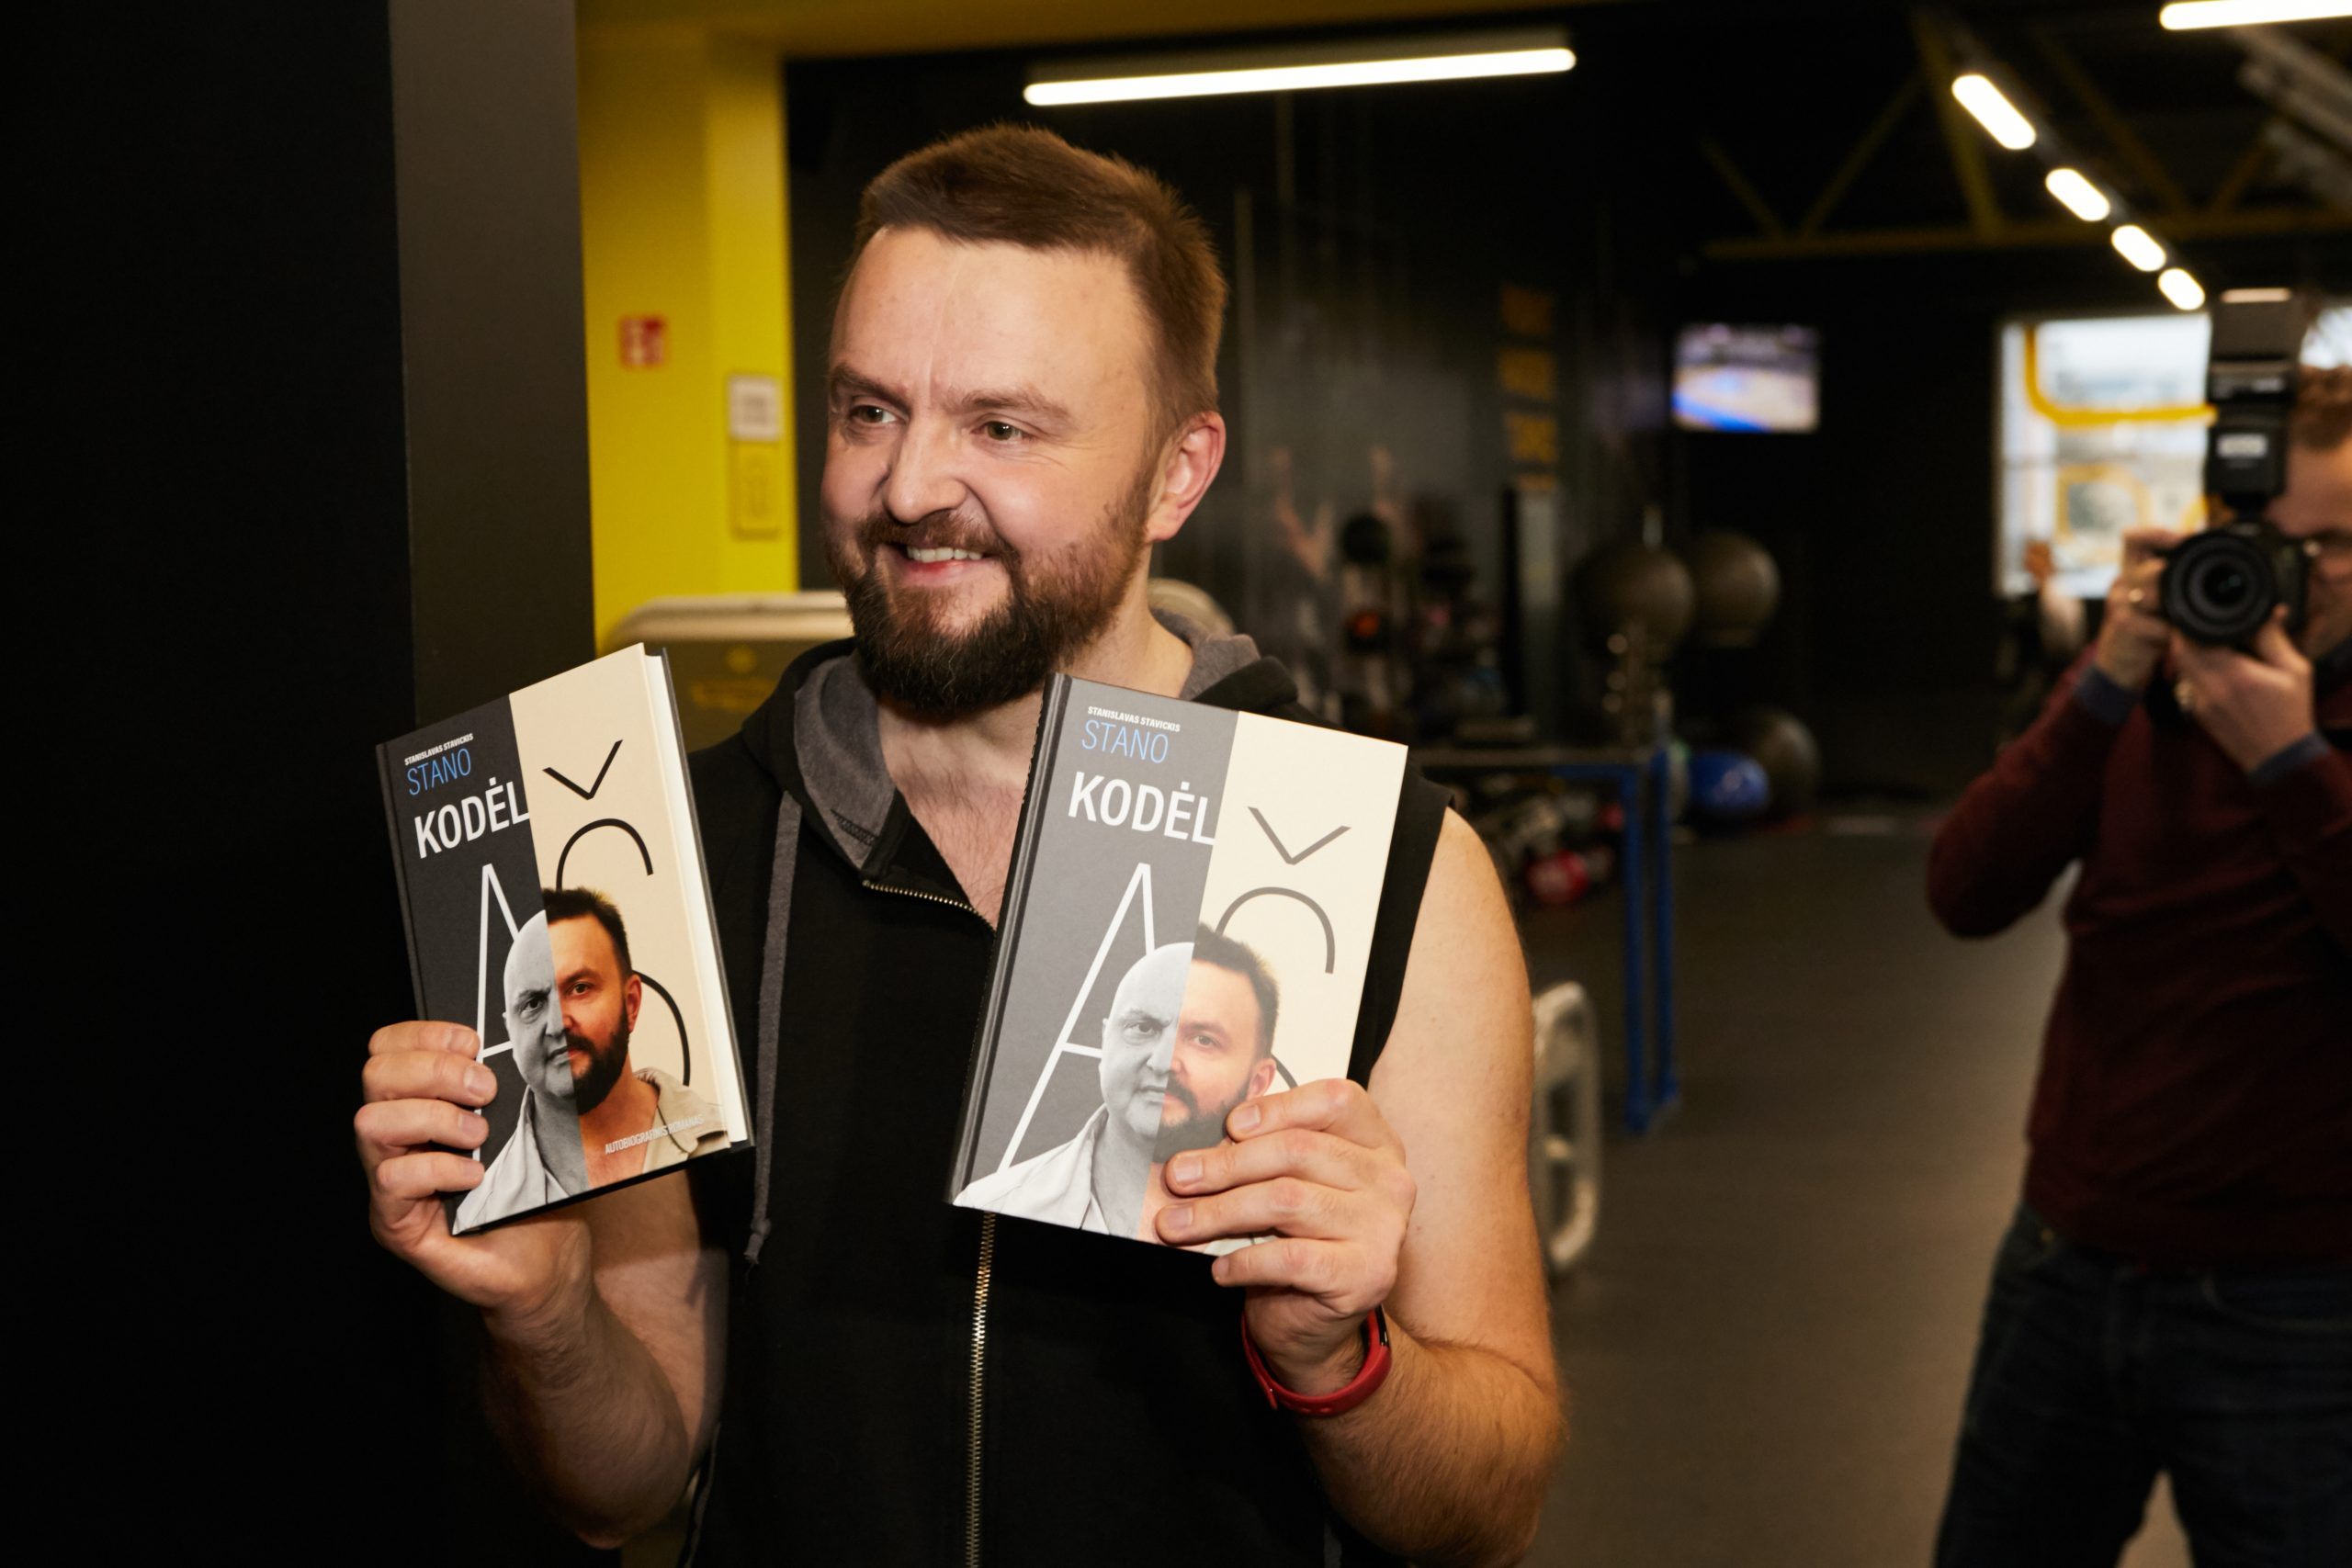 """STANO PRESENTS THE AUTO-BOOK """"WHY ME"""": IT'S NOT ABOUT CANCER, IT'S ABOUT LIFE"""